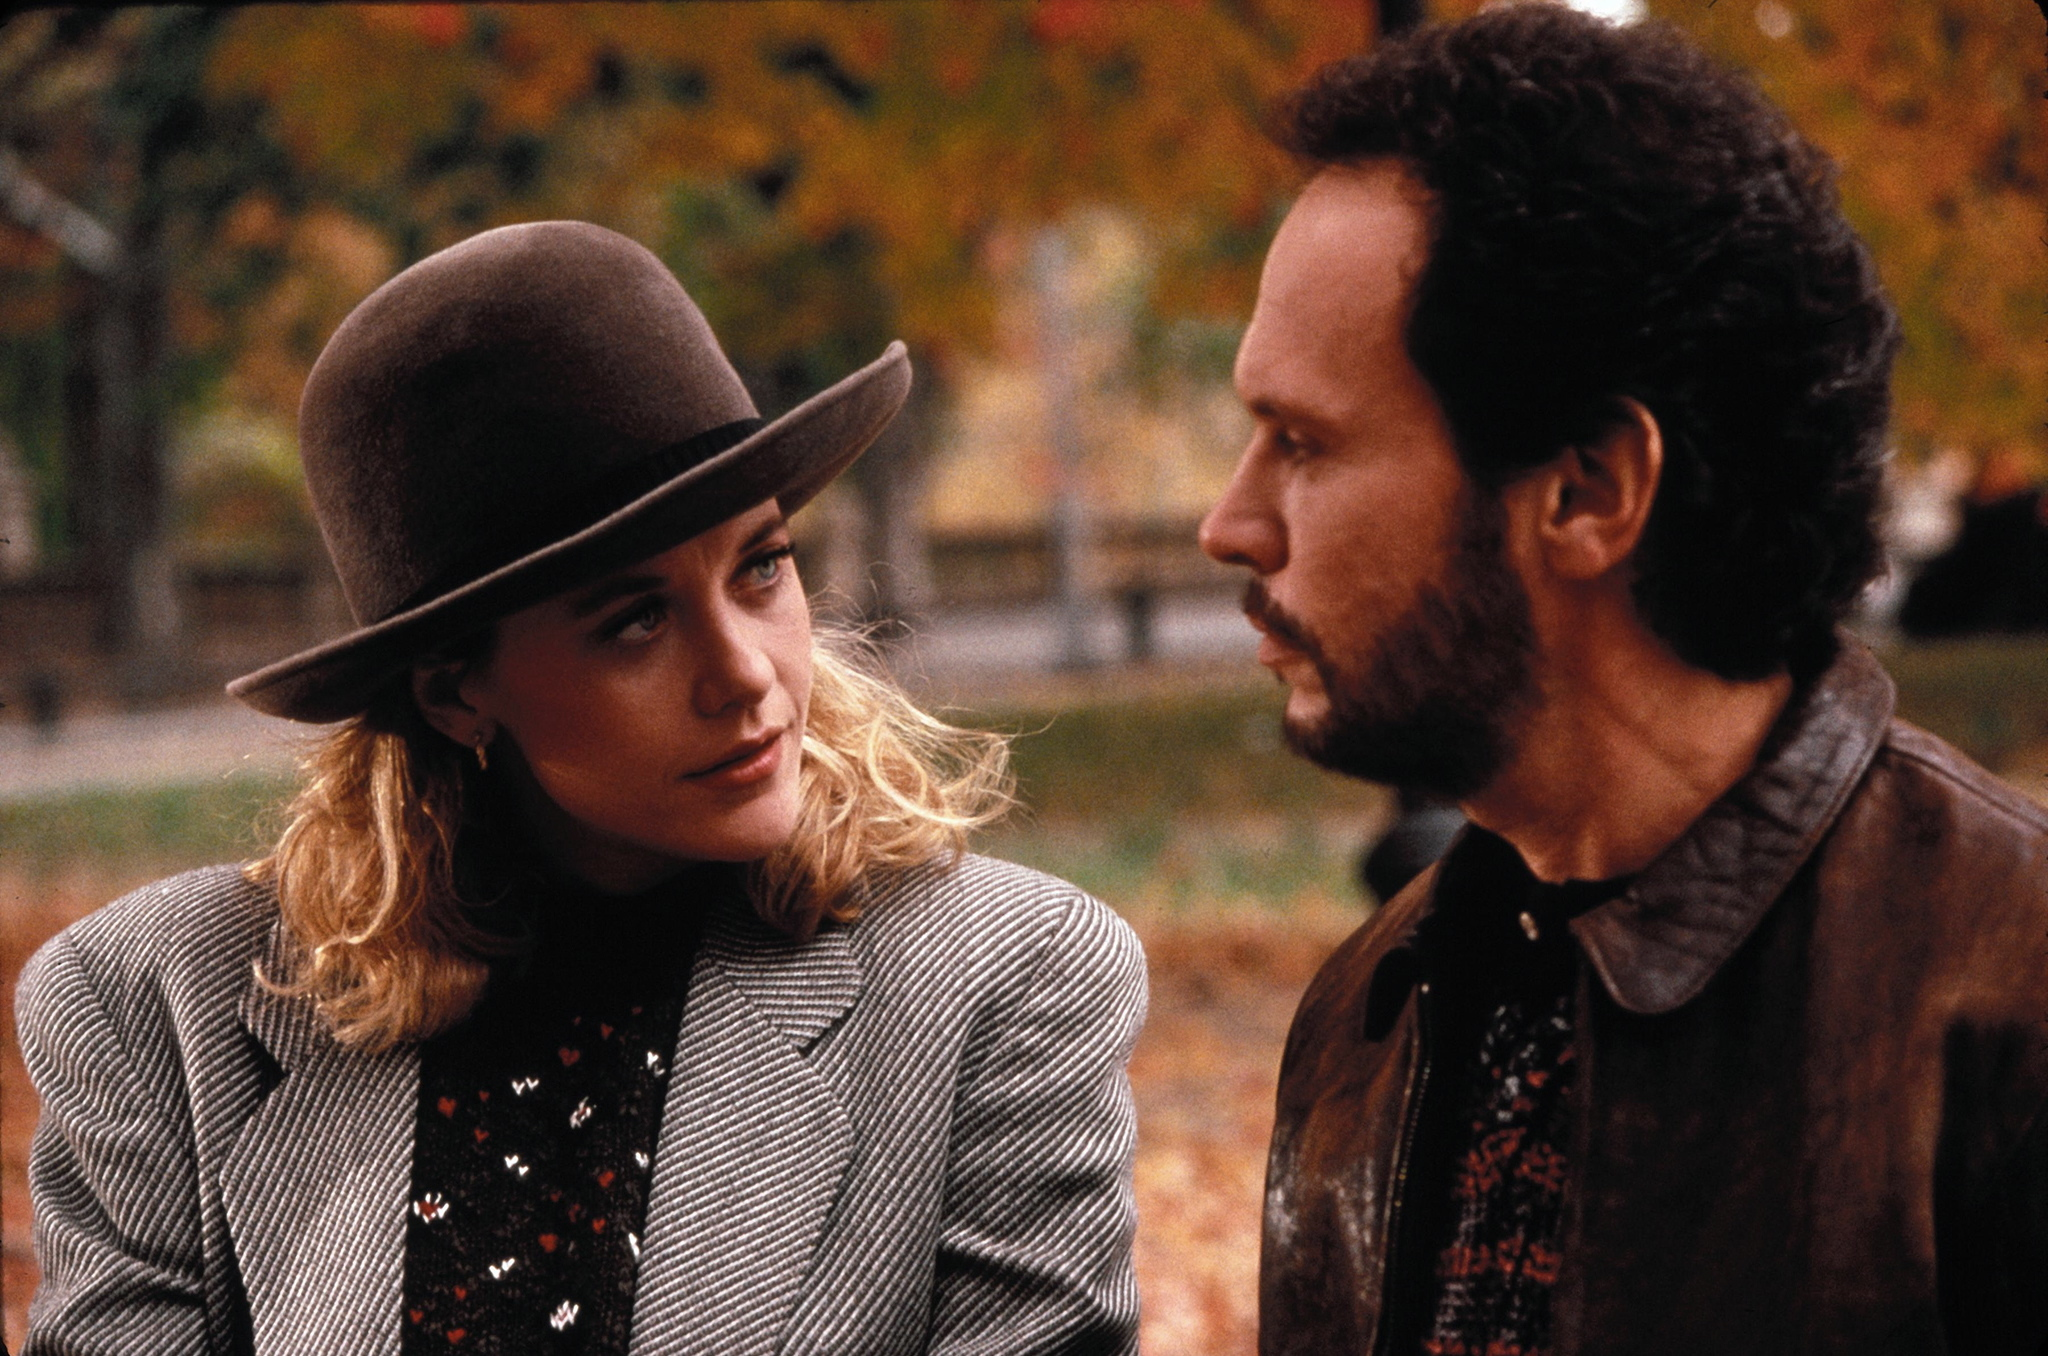 Quand harry rencontre sally streaming francais